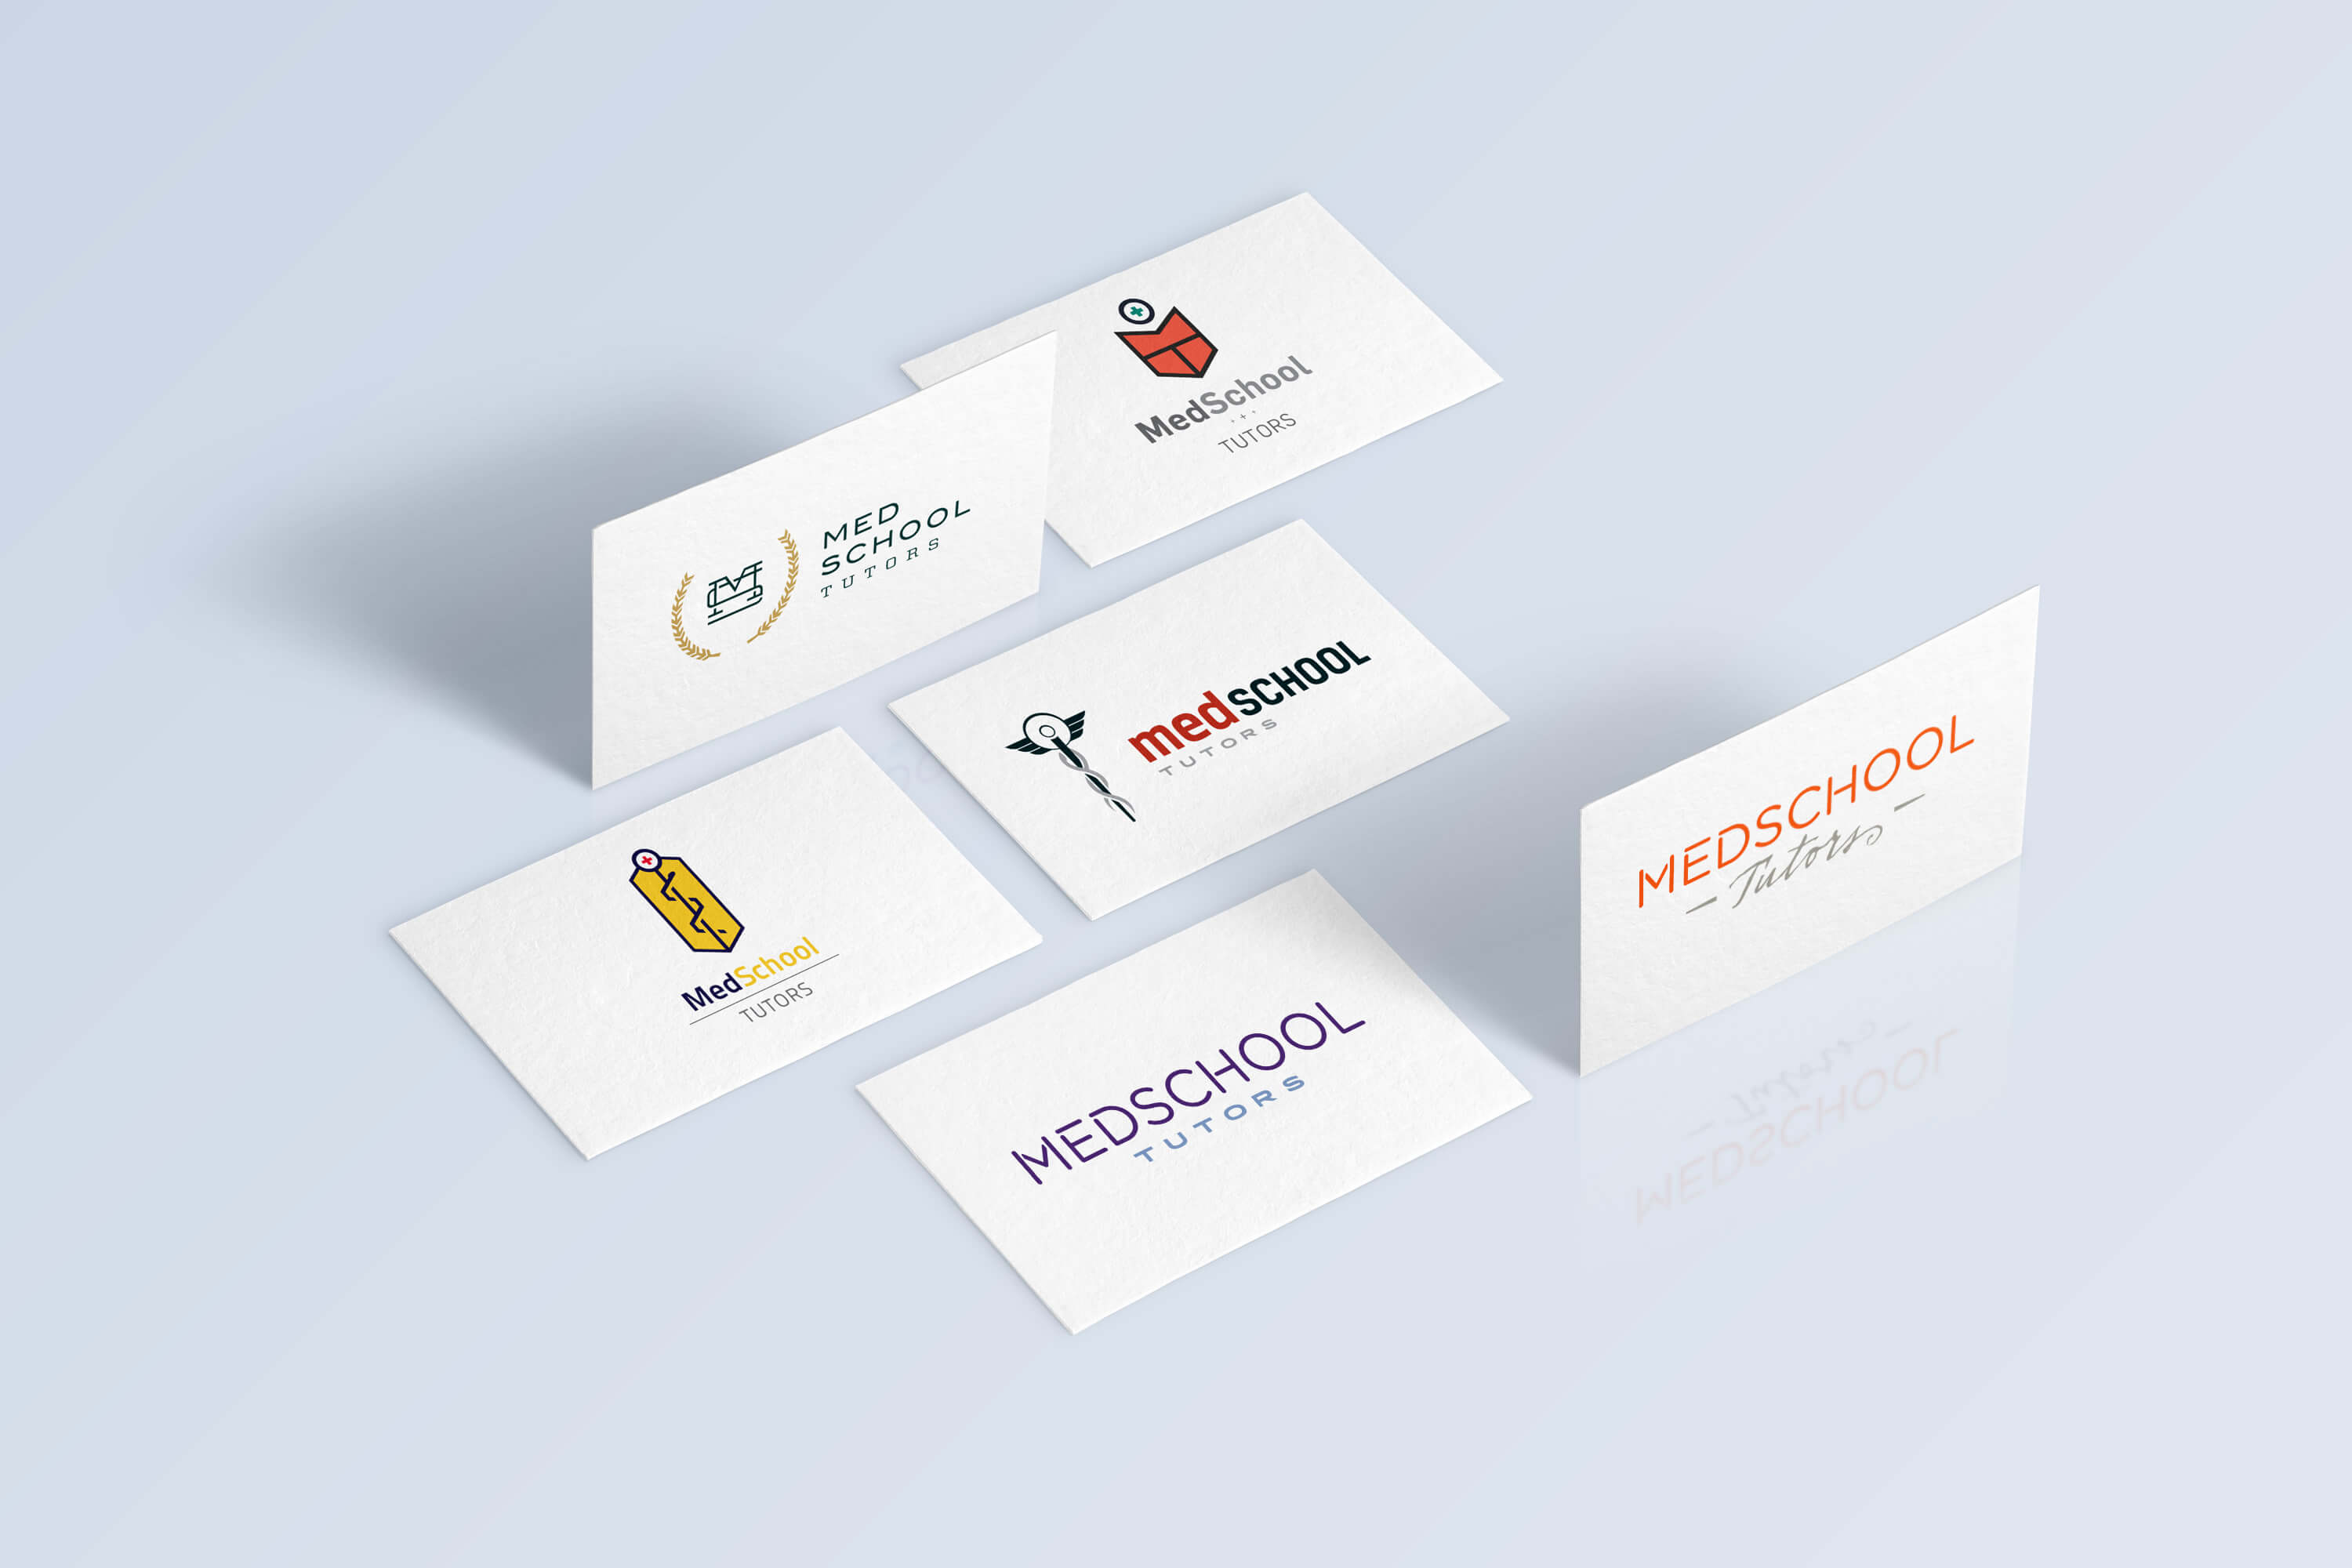 Medschool tutors branding website design ekr portfolio business card design colourmoves